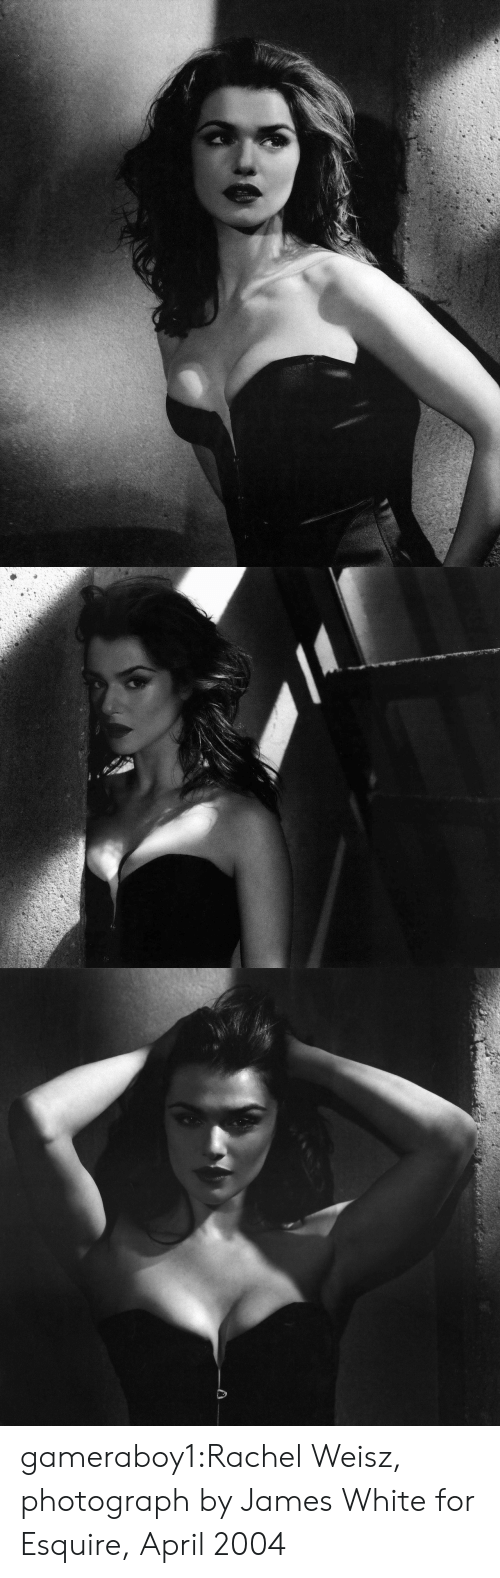 Tumblr, Blog, and Flickr: gameraboy1:Rachel Weisz, photograph by James White for Esquire, April 2004